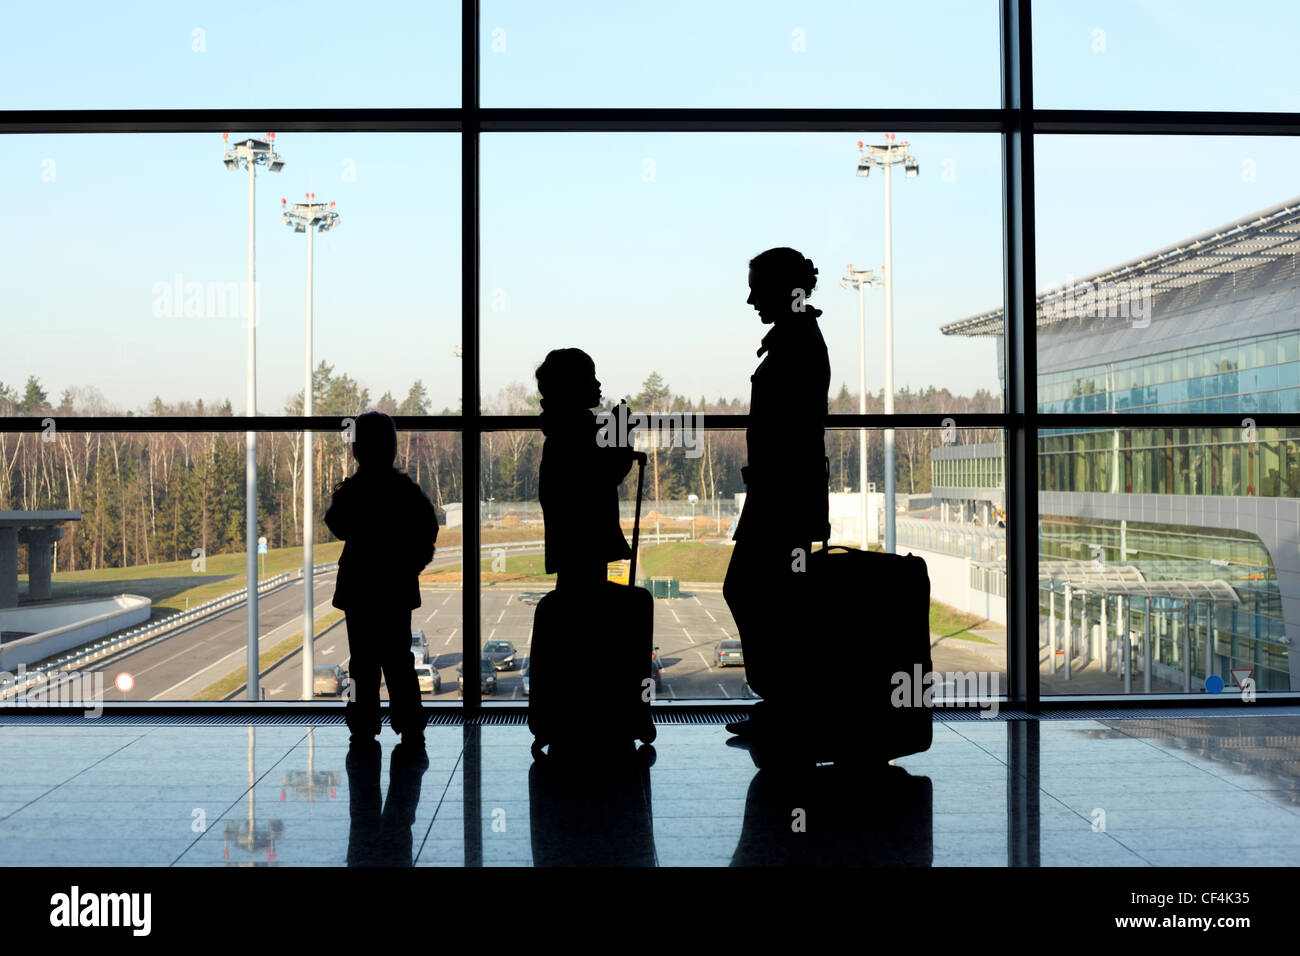 silhouette of mother, son and daughter with luggage standing near window in airport - Stock Image